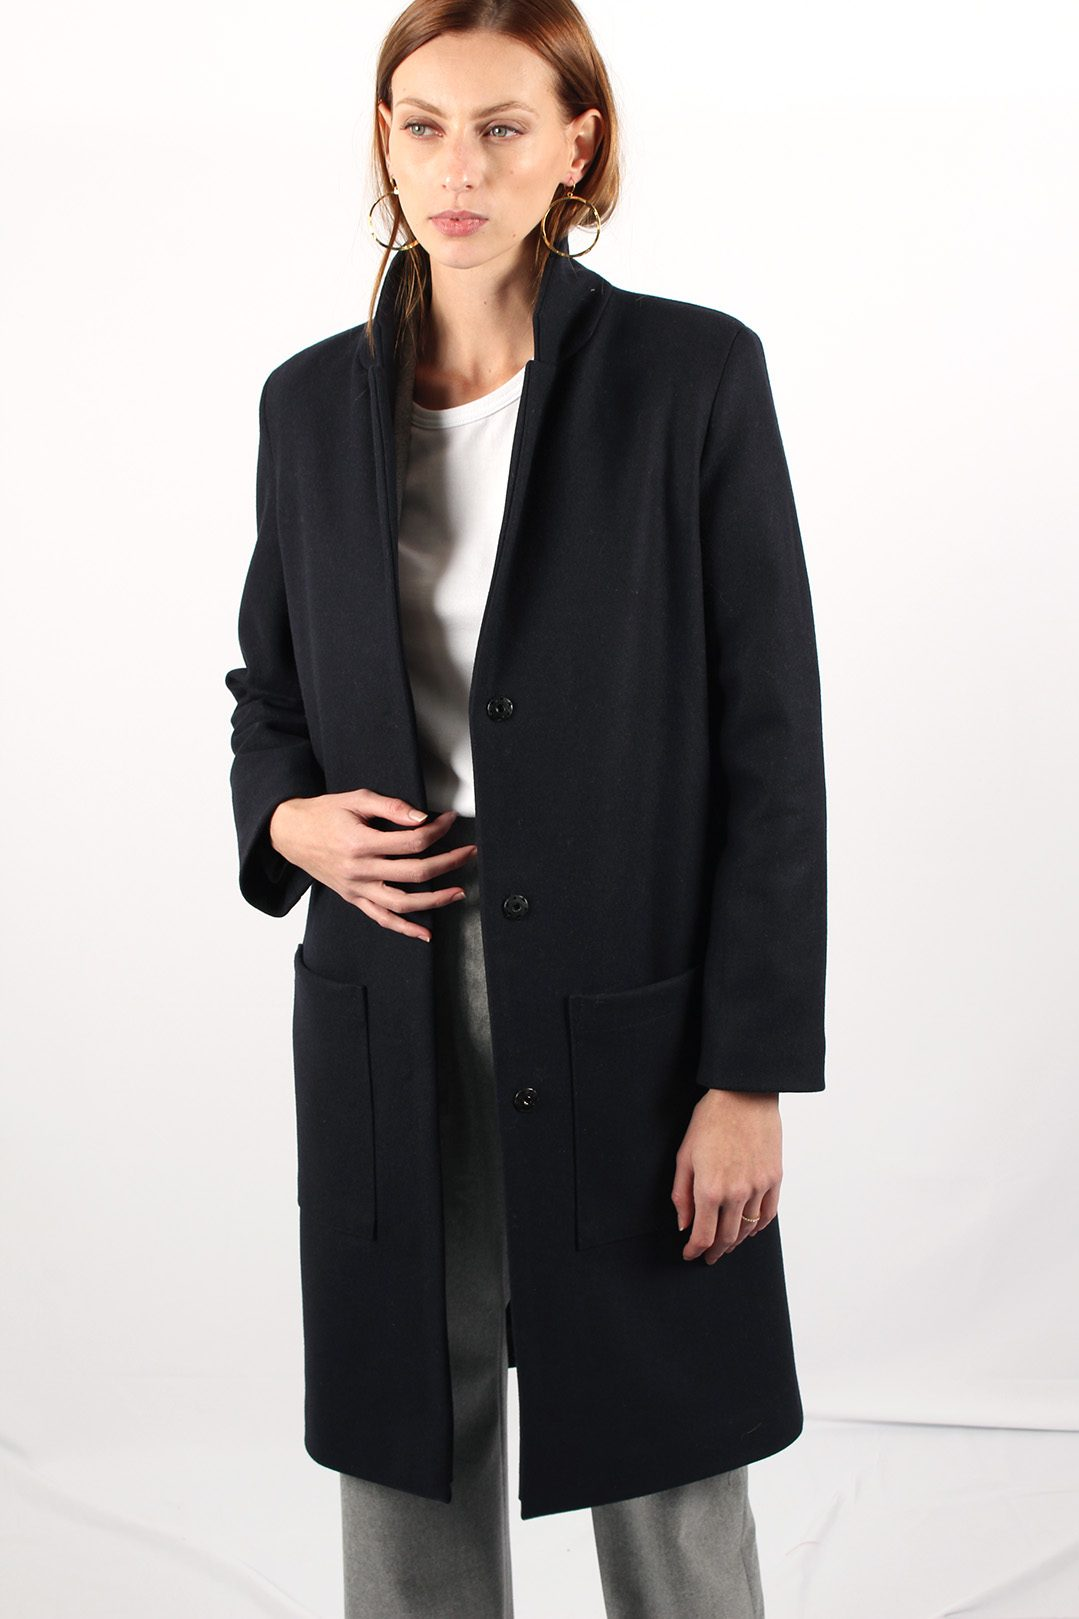 Manteau Oversize en laine bleue marine Made in France | ATODE